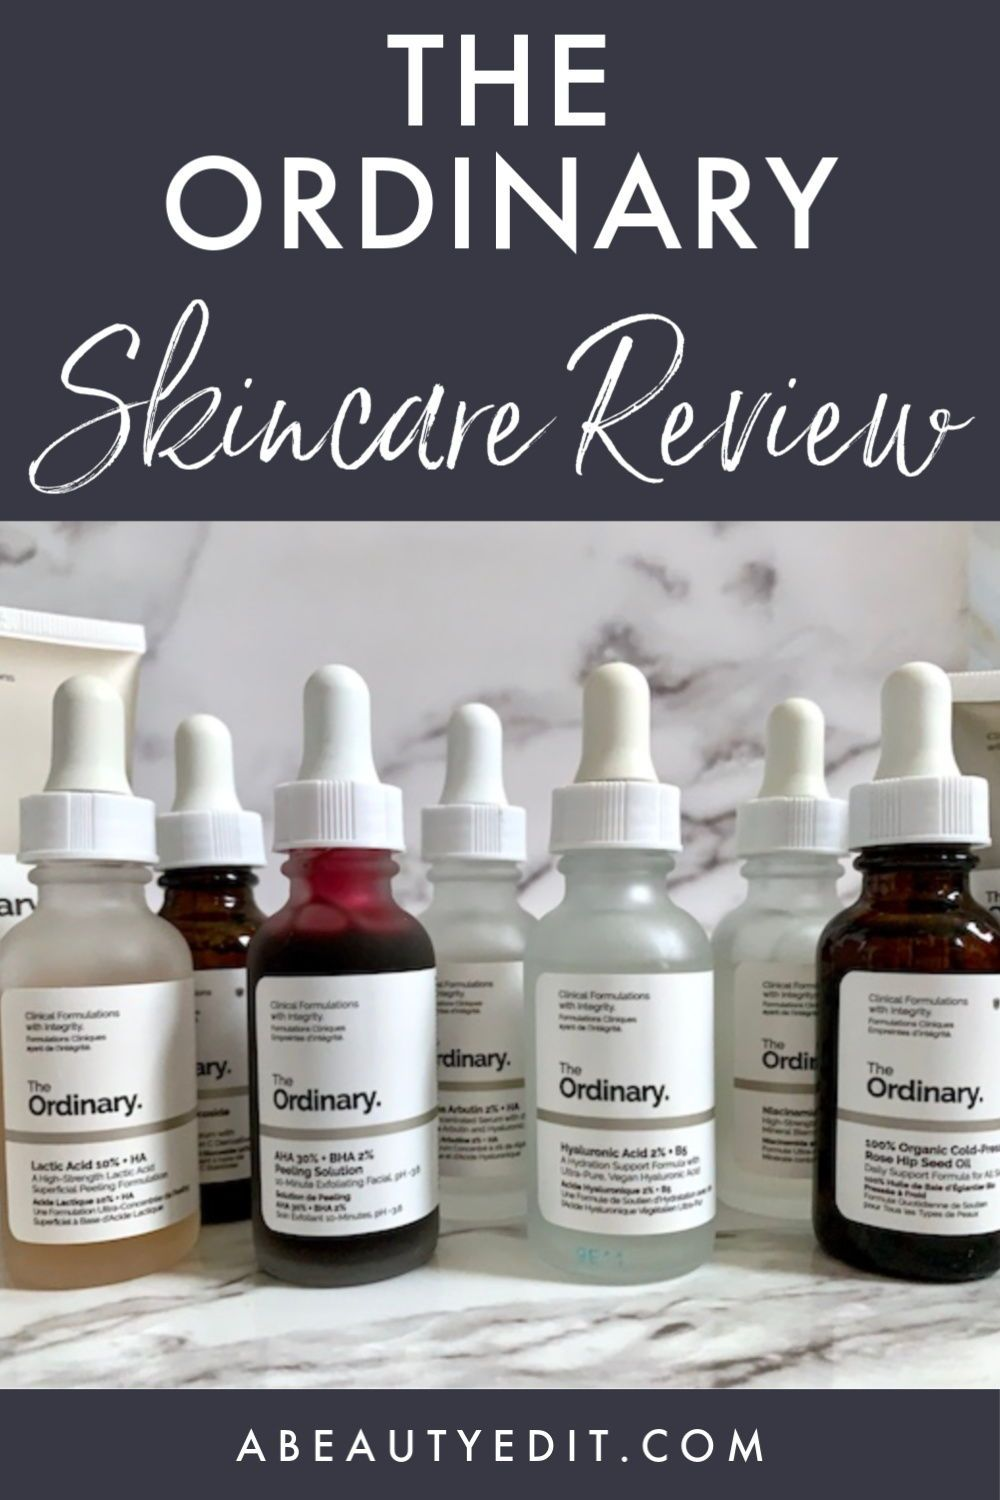 The Ordinary AntiAging Skincare Review A Beauty Edit in